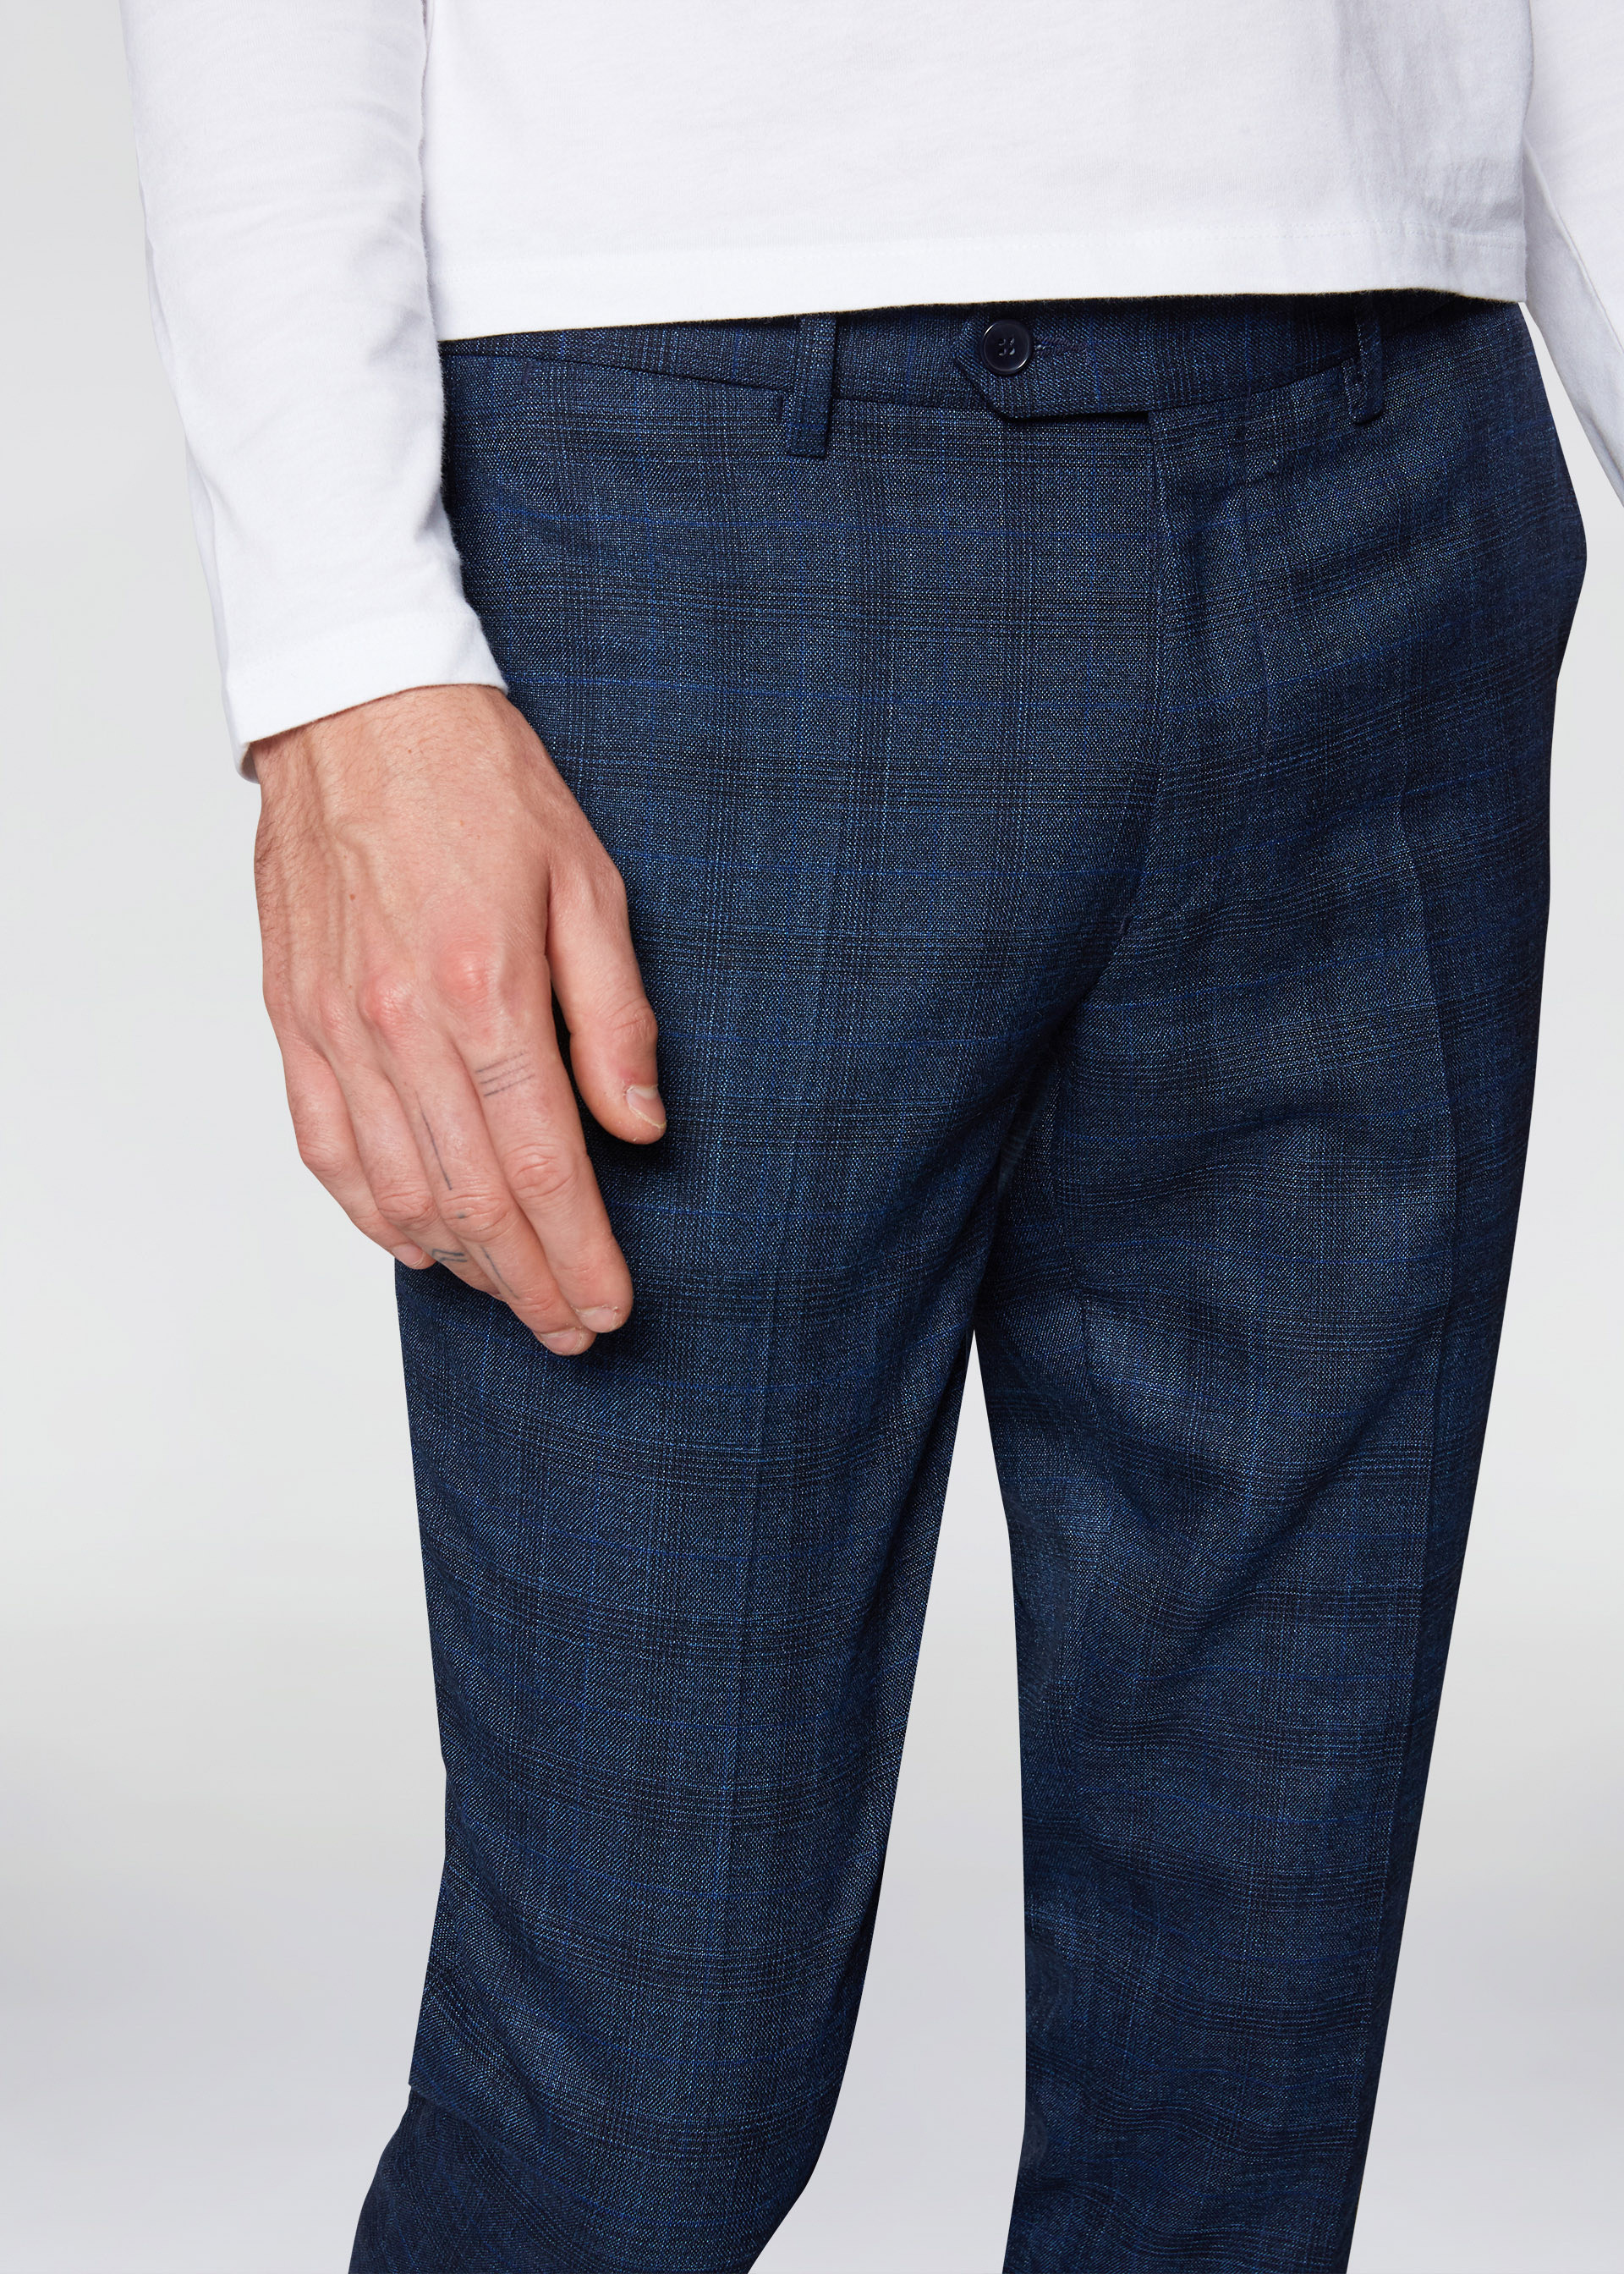 Pantaloni slim e stretch